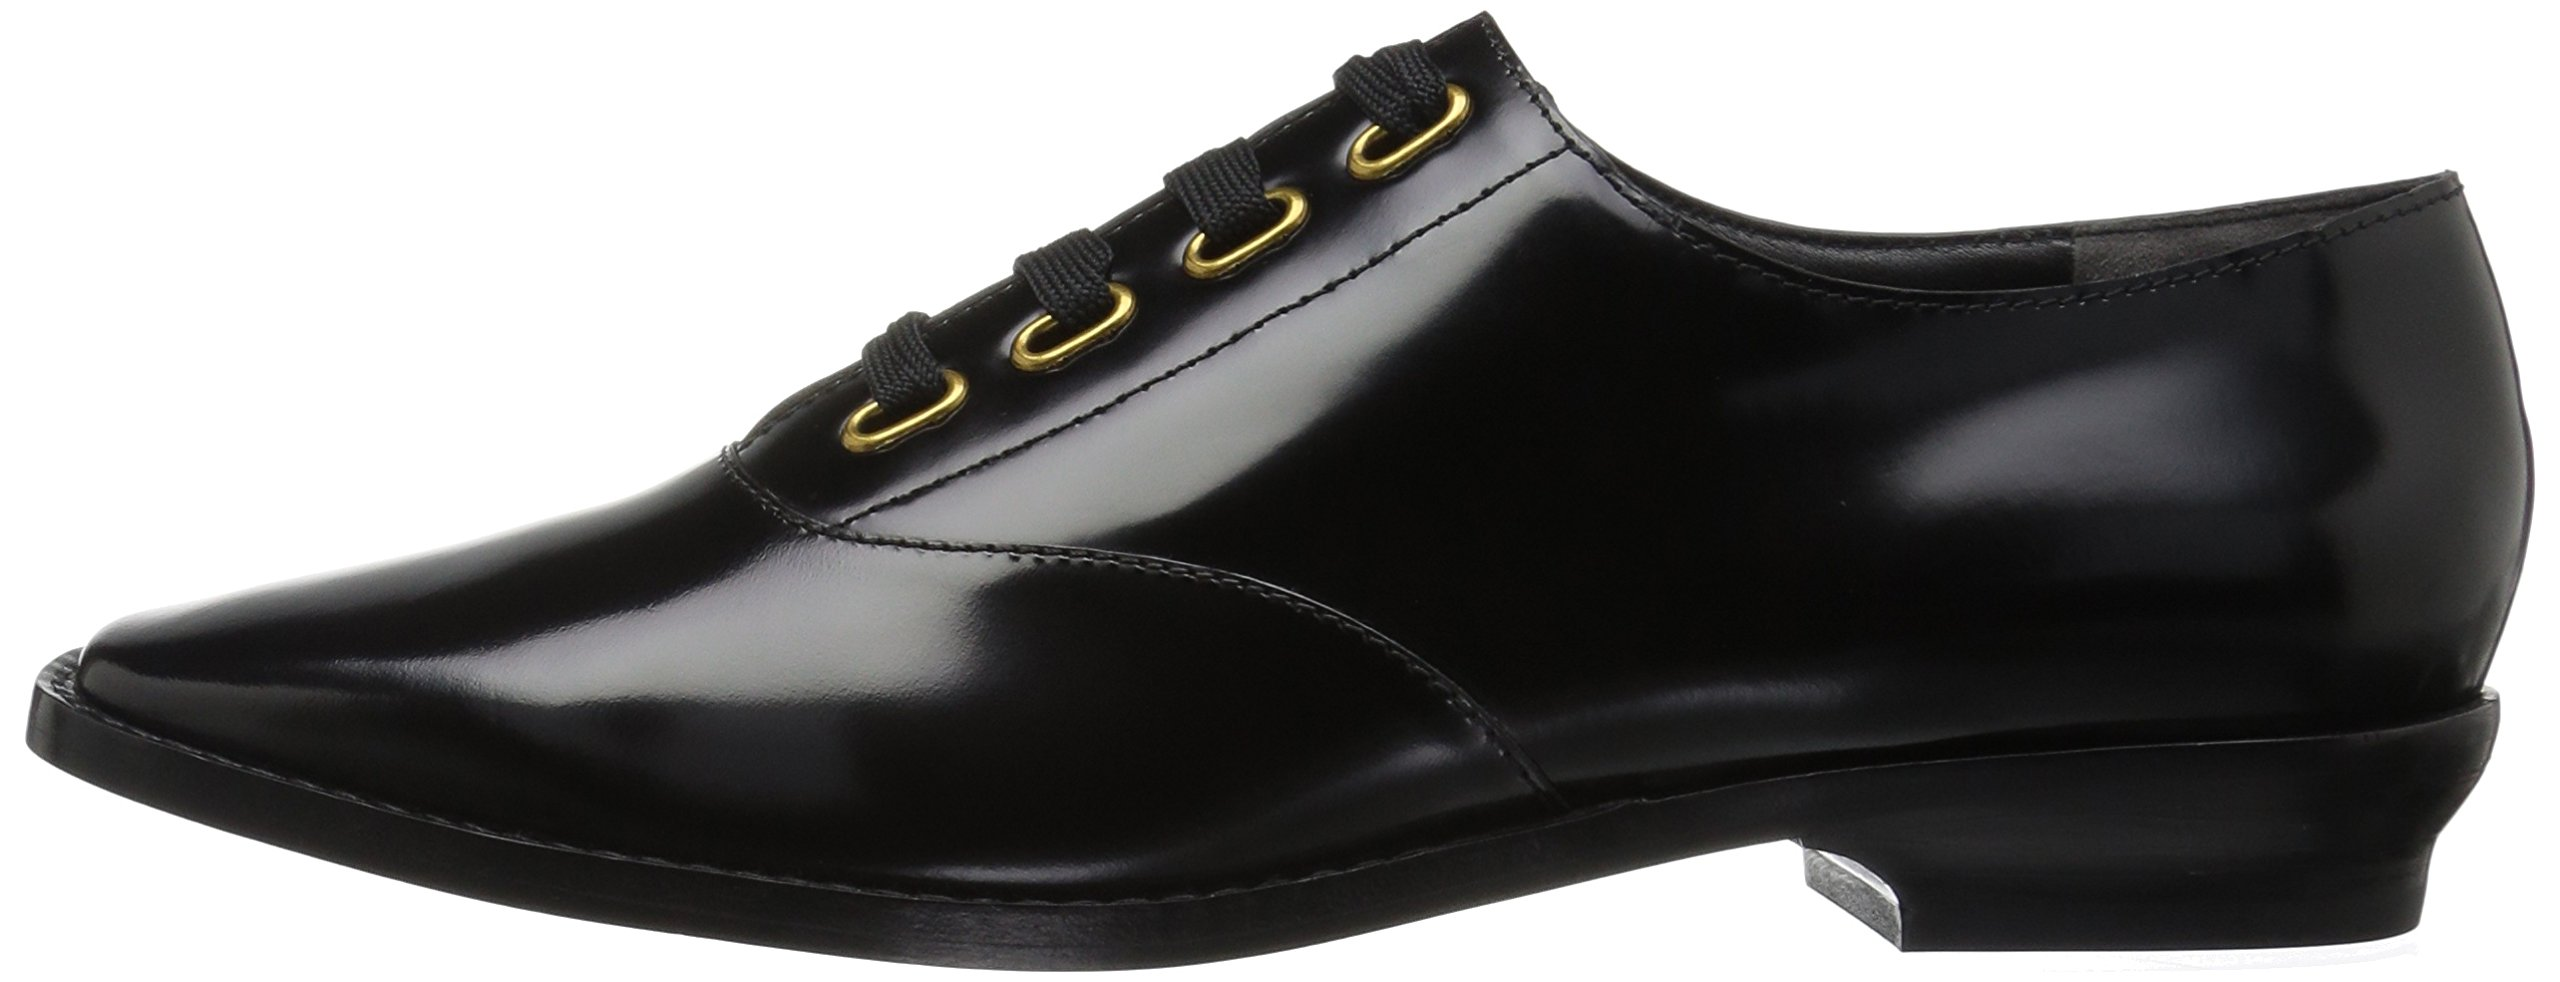 Marc Jacobs Women's Brittany Lace up Oxford, Black, 36 M EU (6 US) by Marc Jacobs (Image #5)